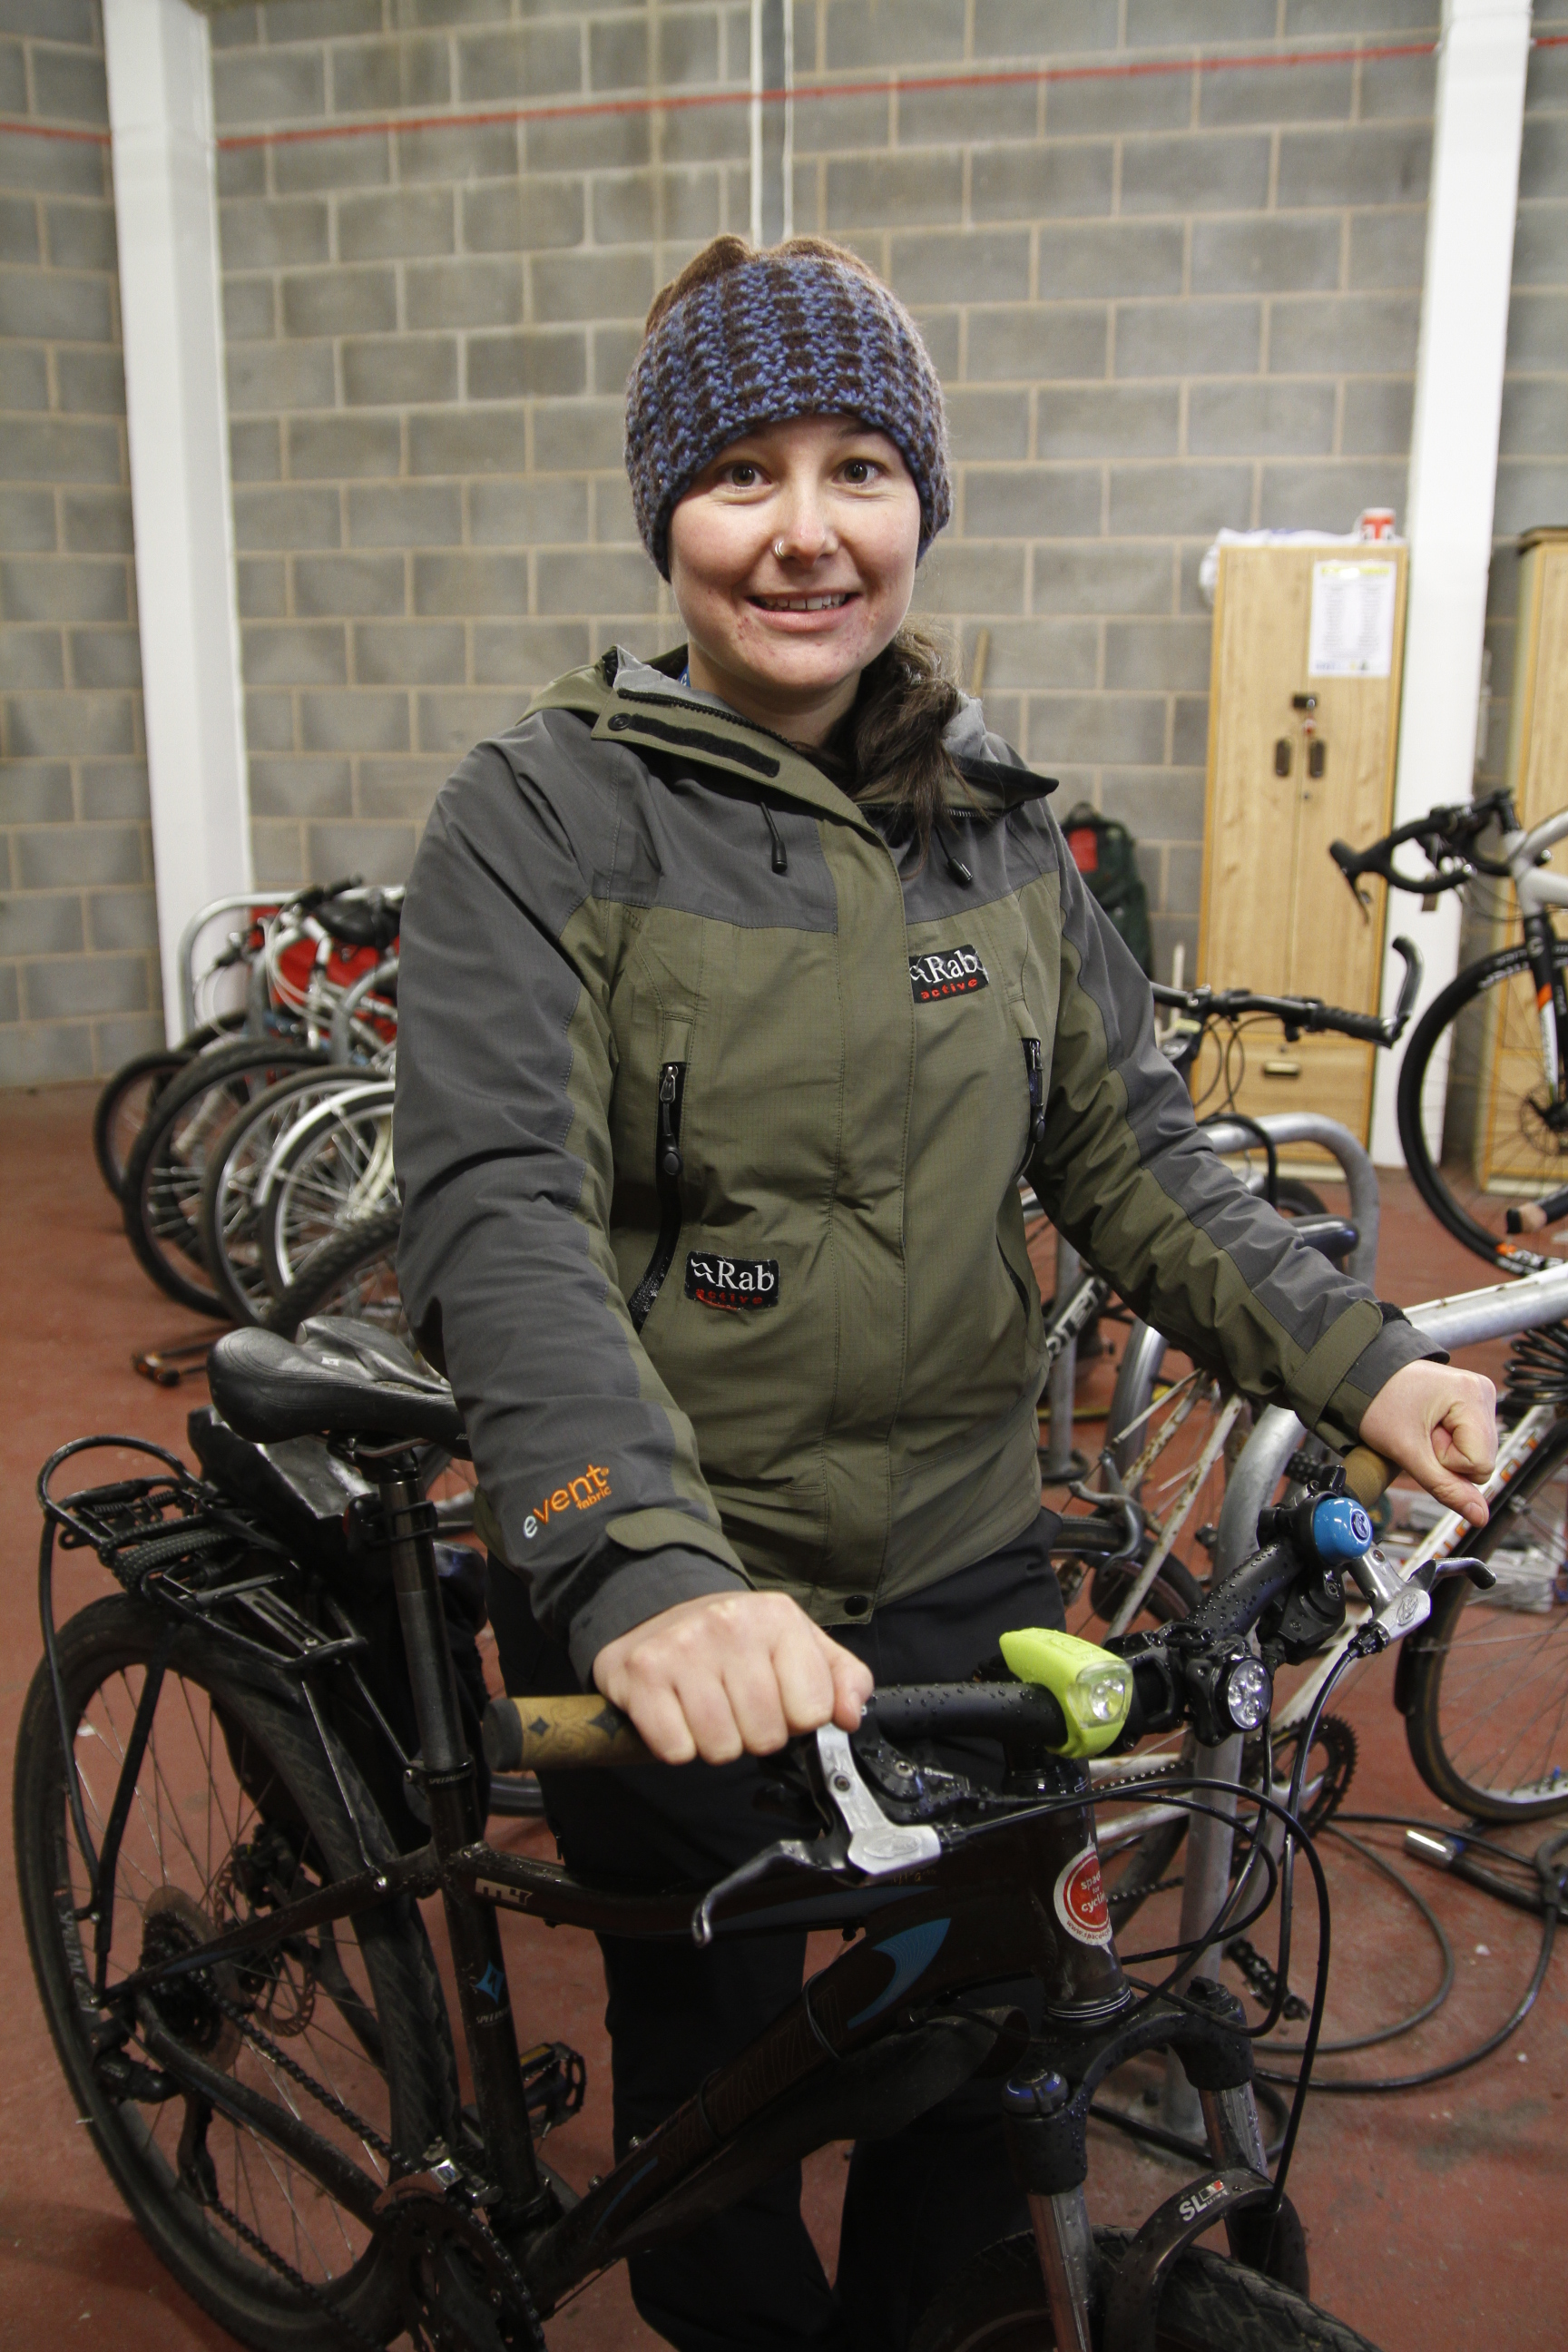 Free bike check-ups across the county for cyclists